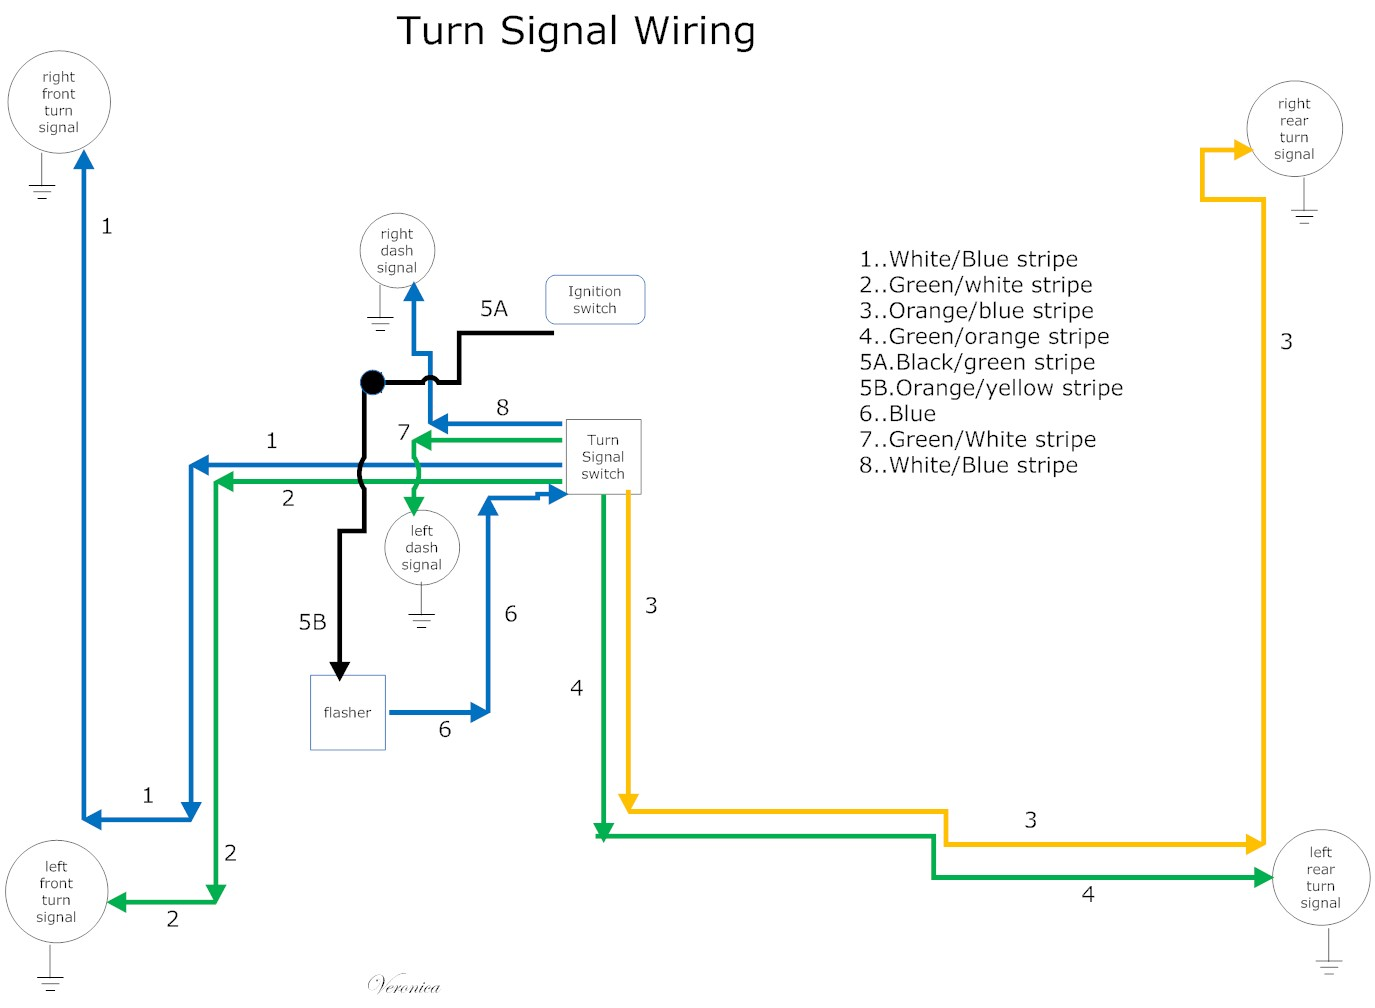 Turn+signal+Wiring the care and feeding of ponies 1965 1966 mustang turn signal 93 mustang turn signal wiring diagram at virtualis.co